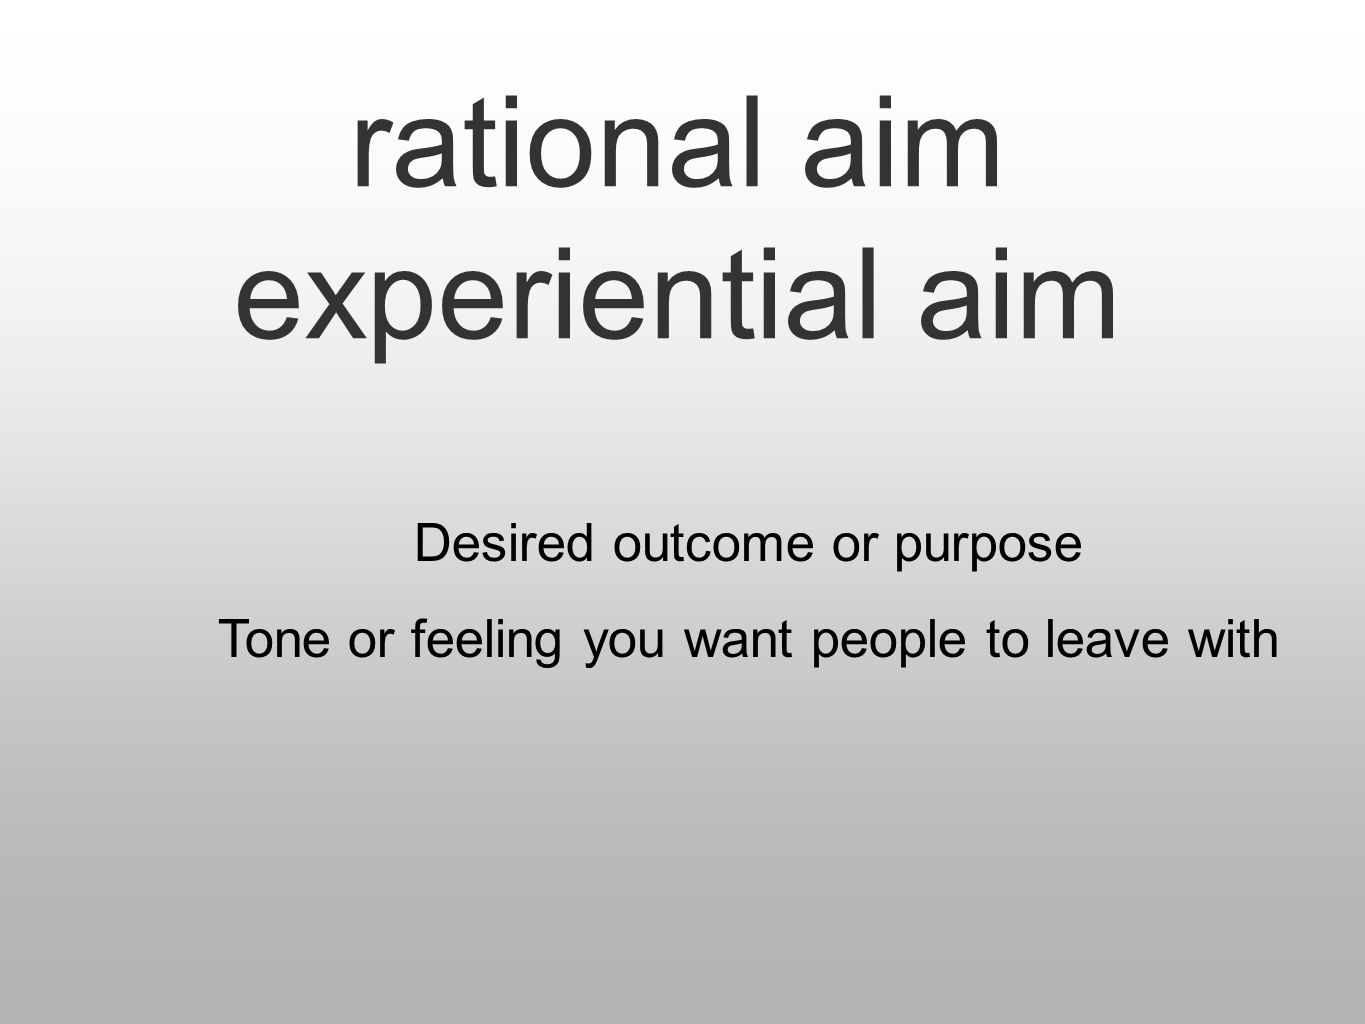 rational aim experiential aim Desired outcome or purpose Tone or feeling you want people to leave with